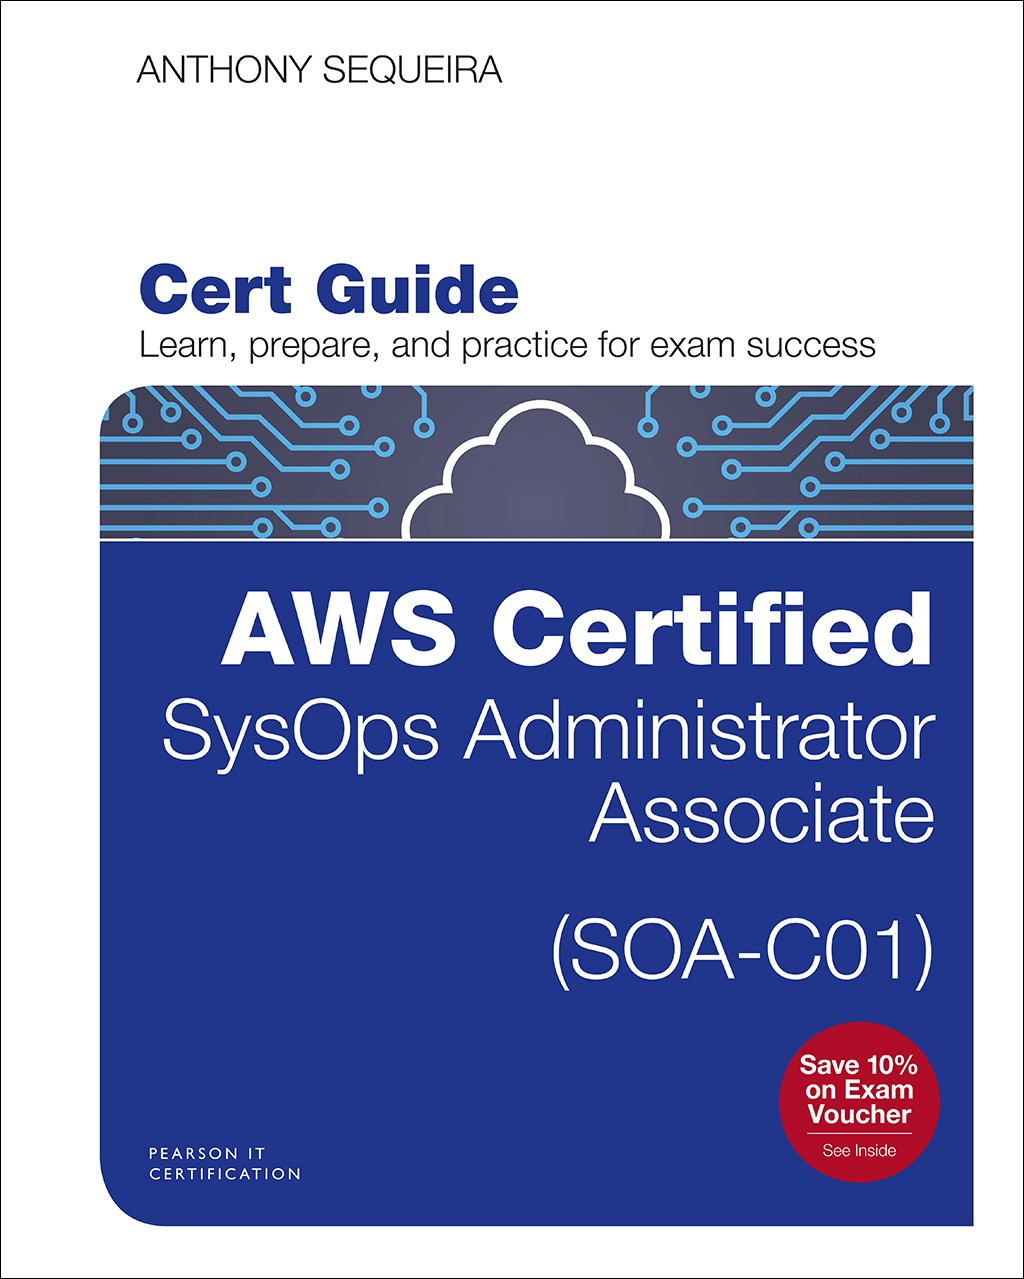 AWS Certified SysOps Administrator - Associate (SOA-C01) Cert Guide